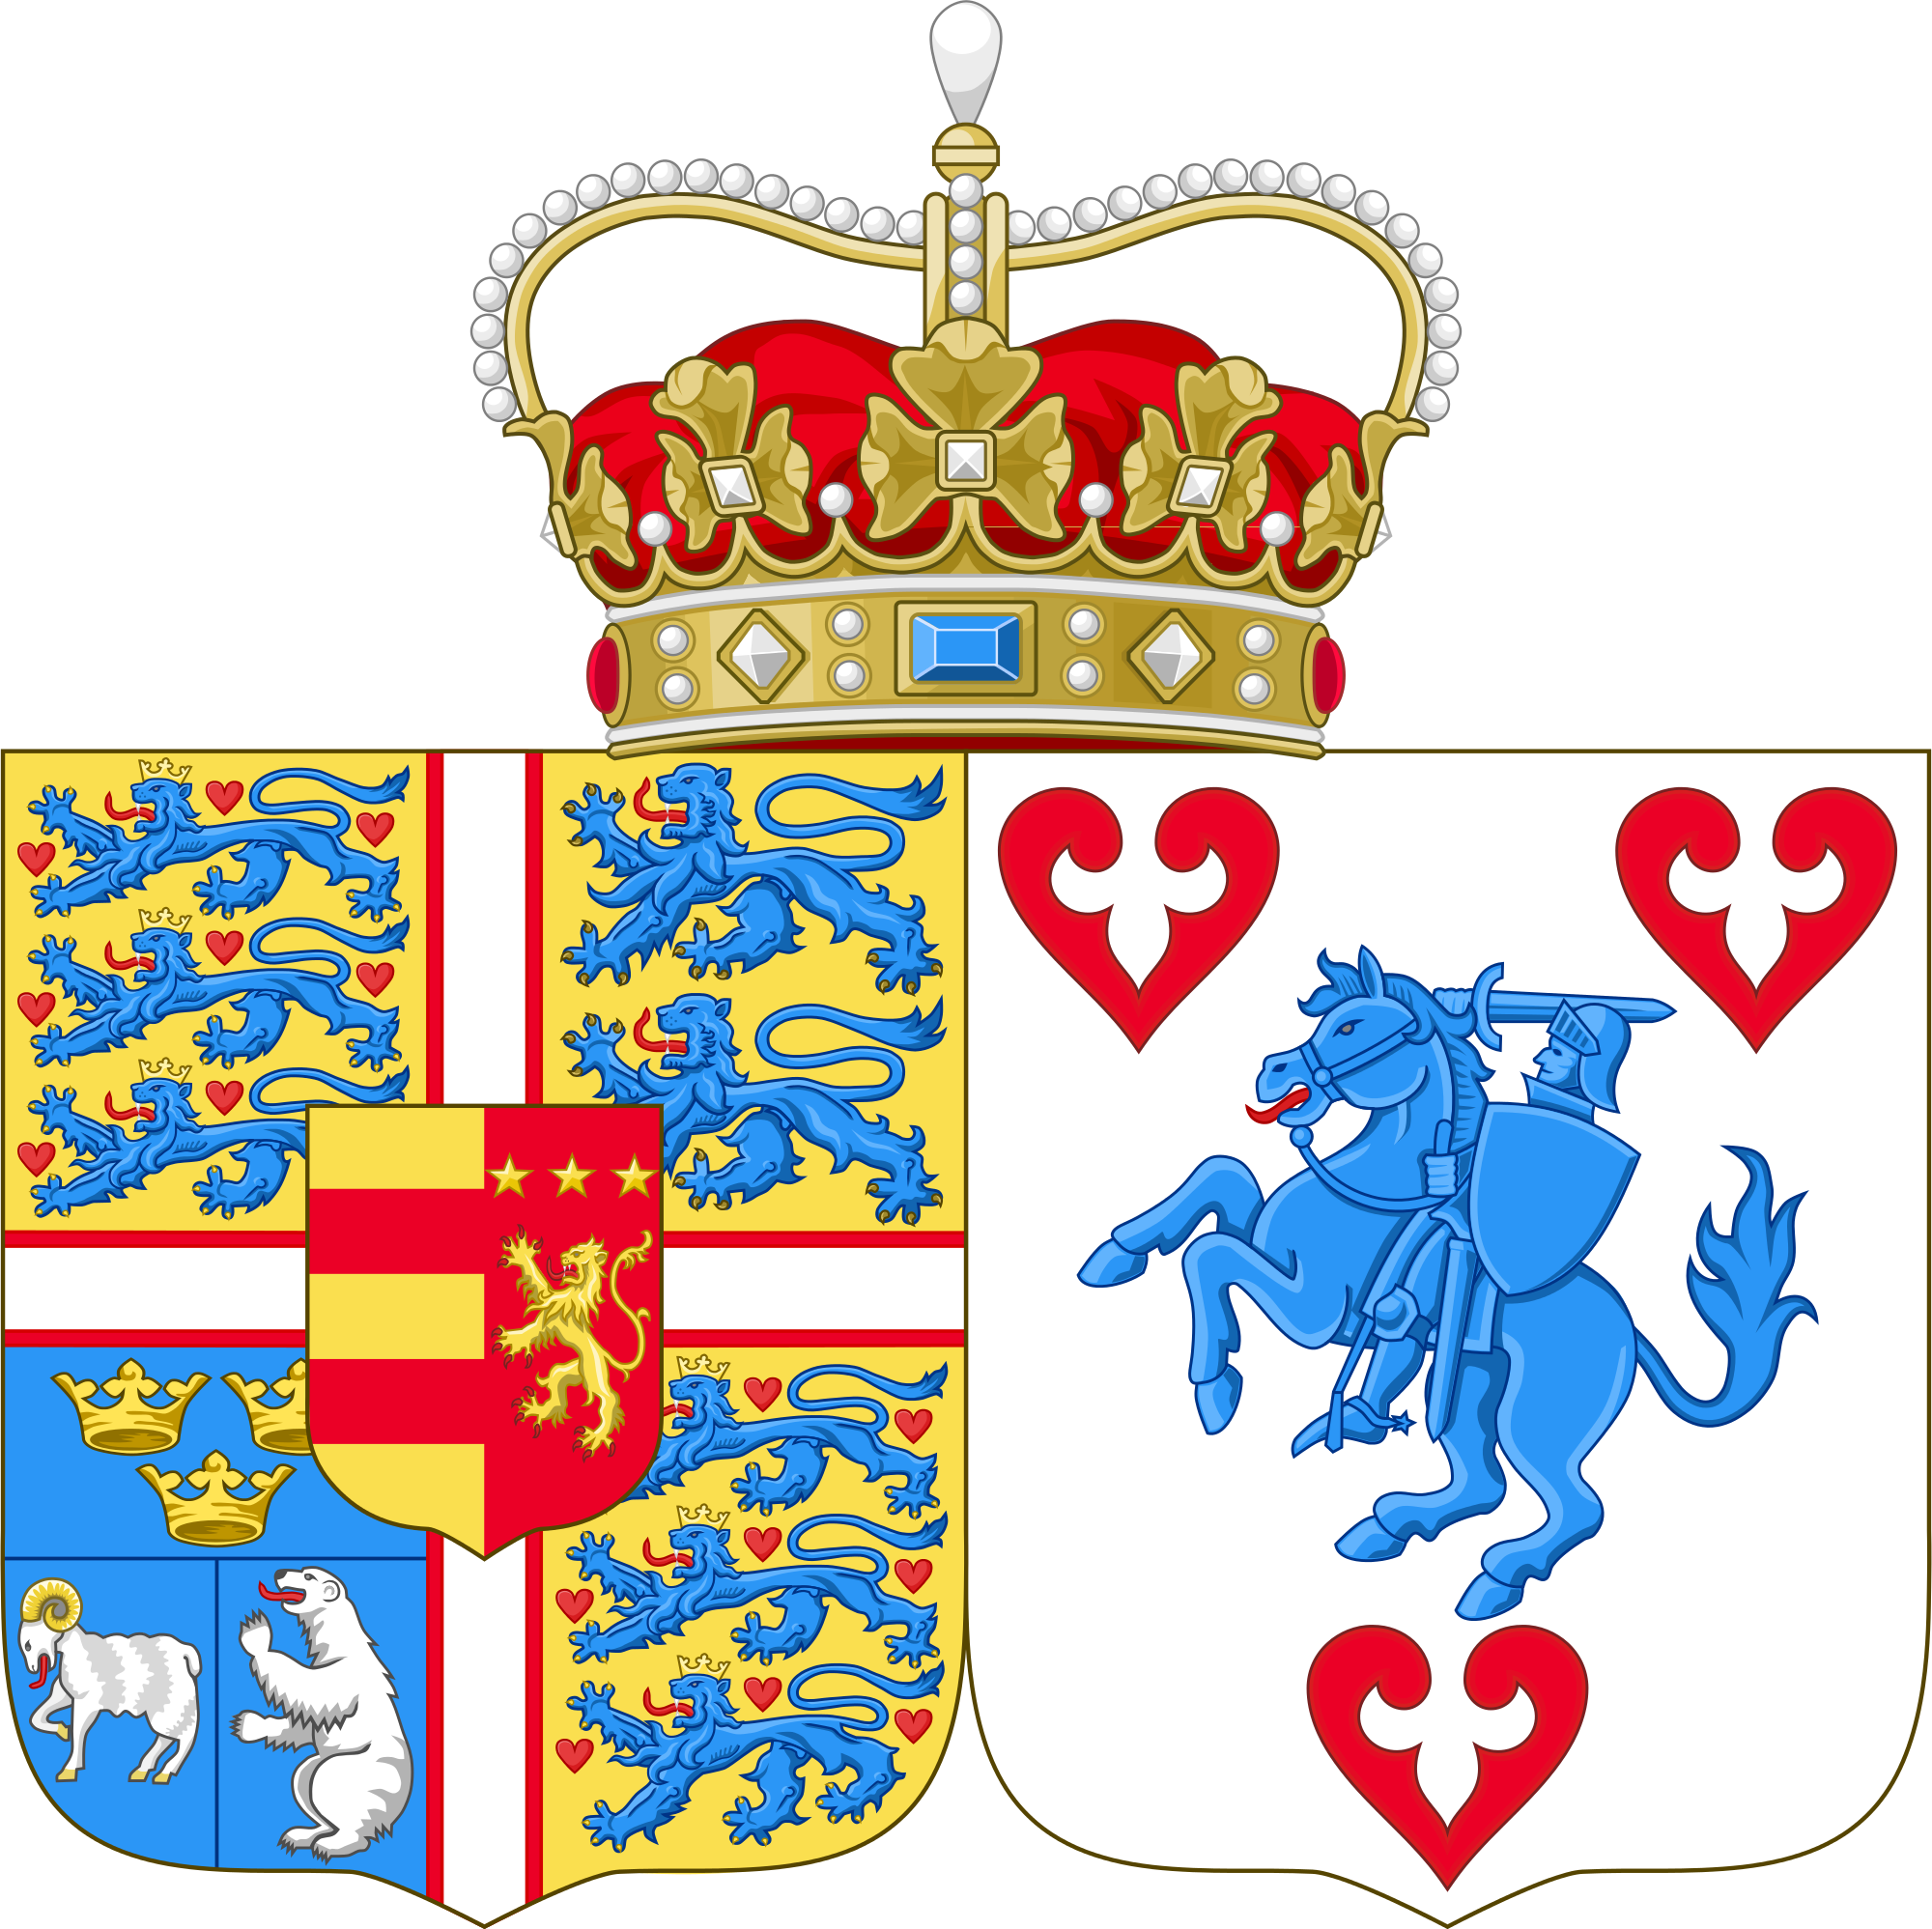 File:Coat of arms of Princess Marie of Denmark.svg.